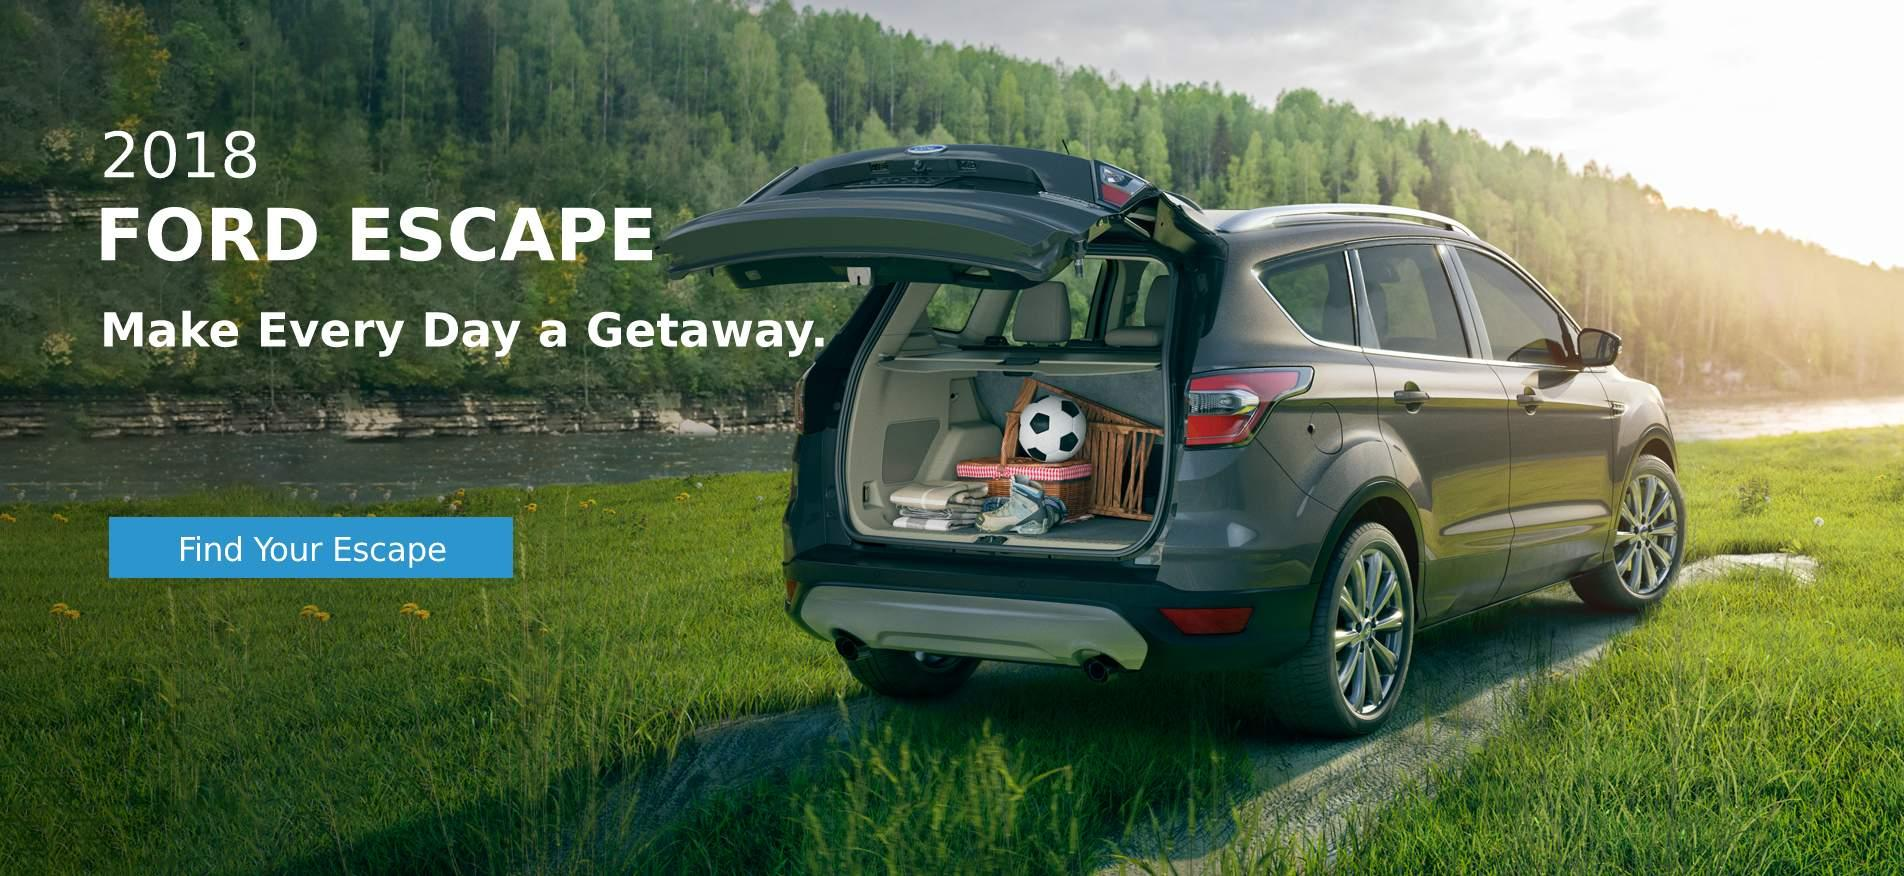 2018 Escape Coastal Ford Vancouver